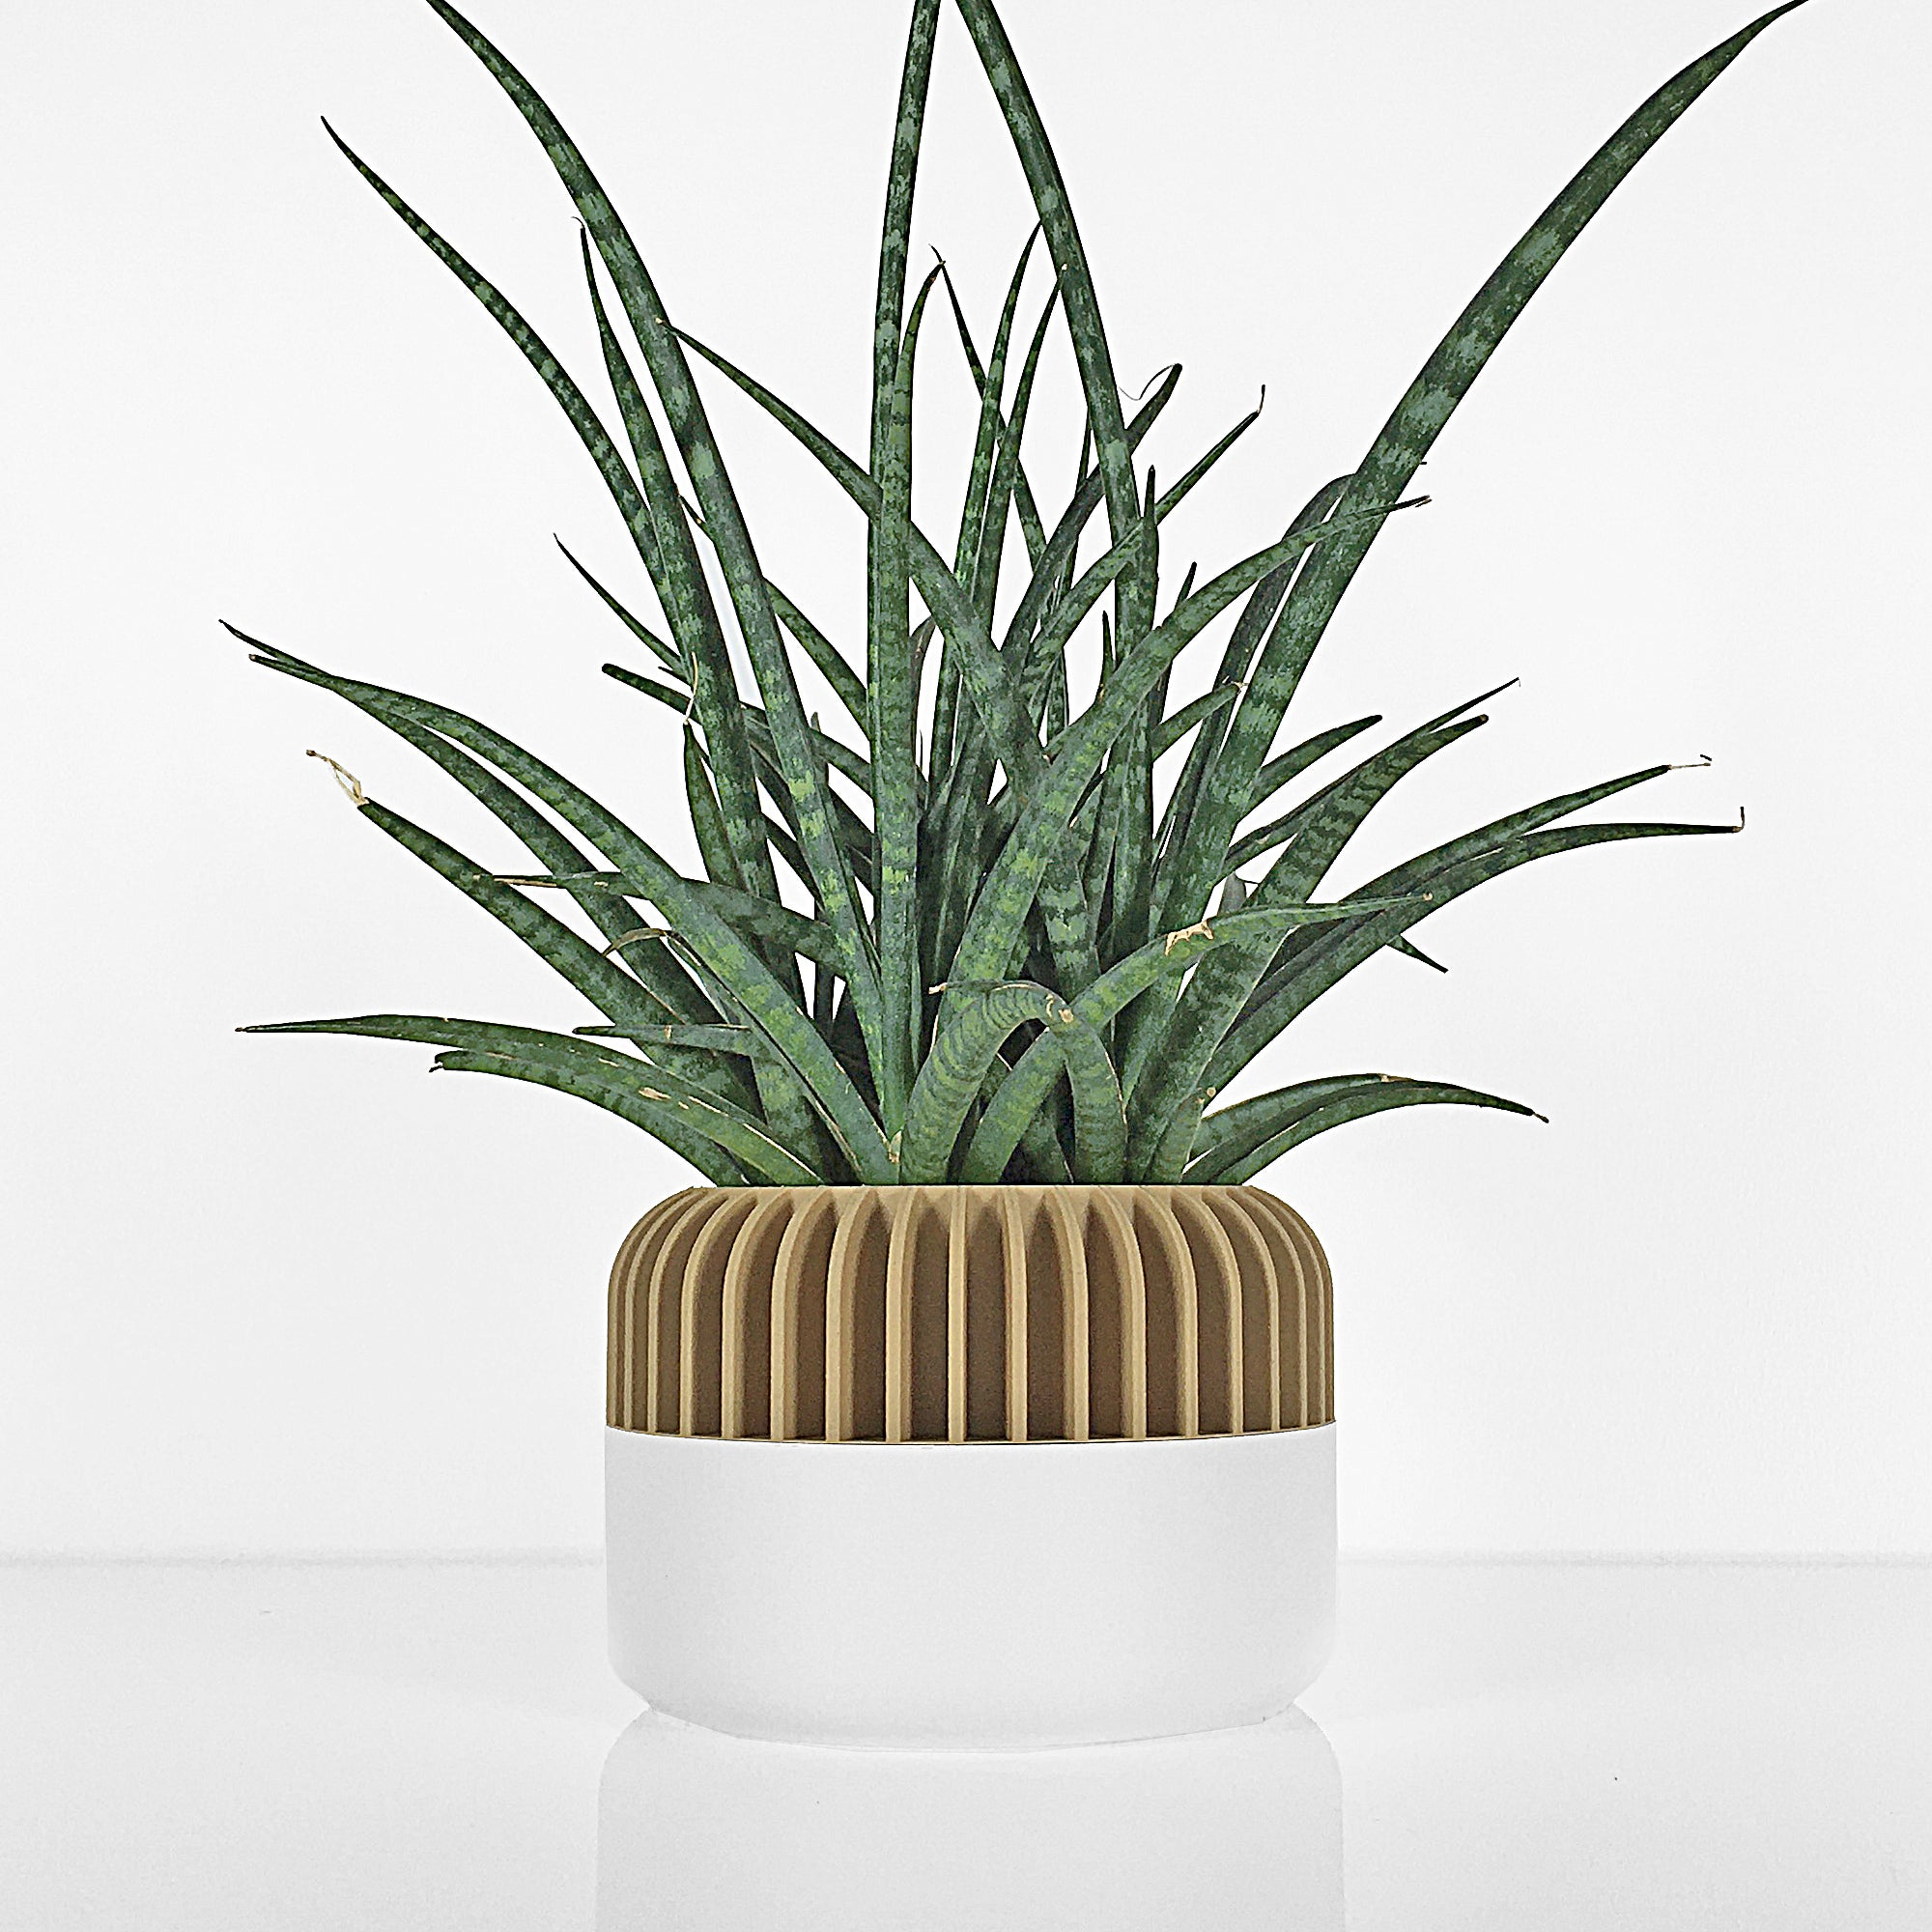 Big Planter ° OBUU ° . Matte White & Wood